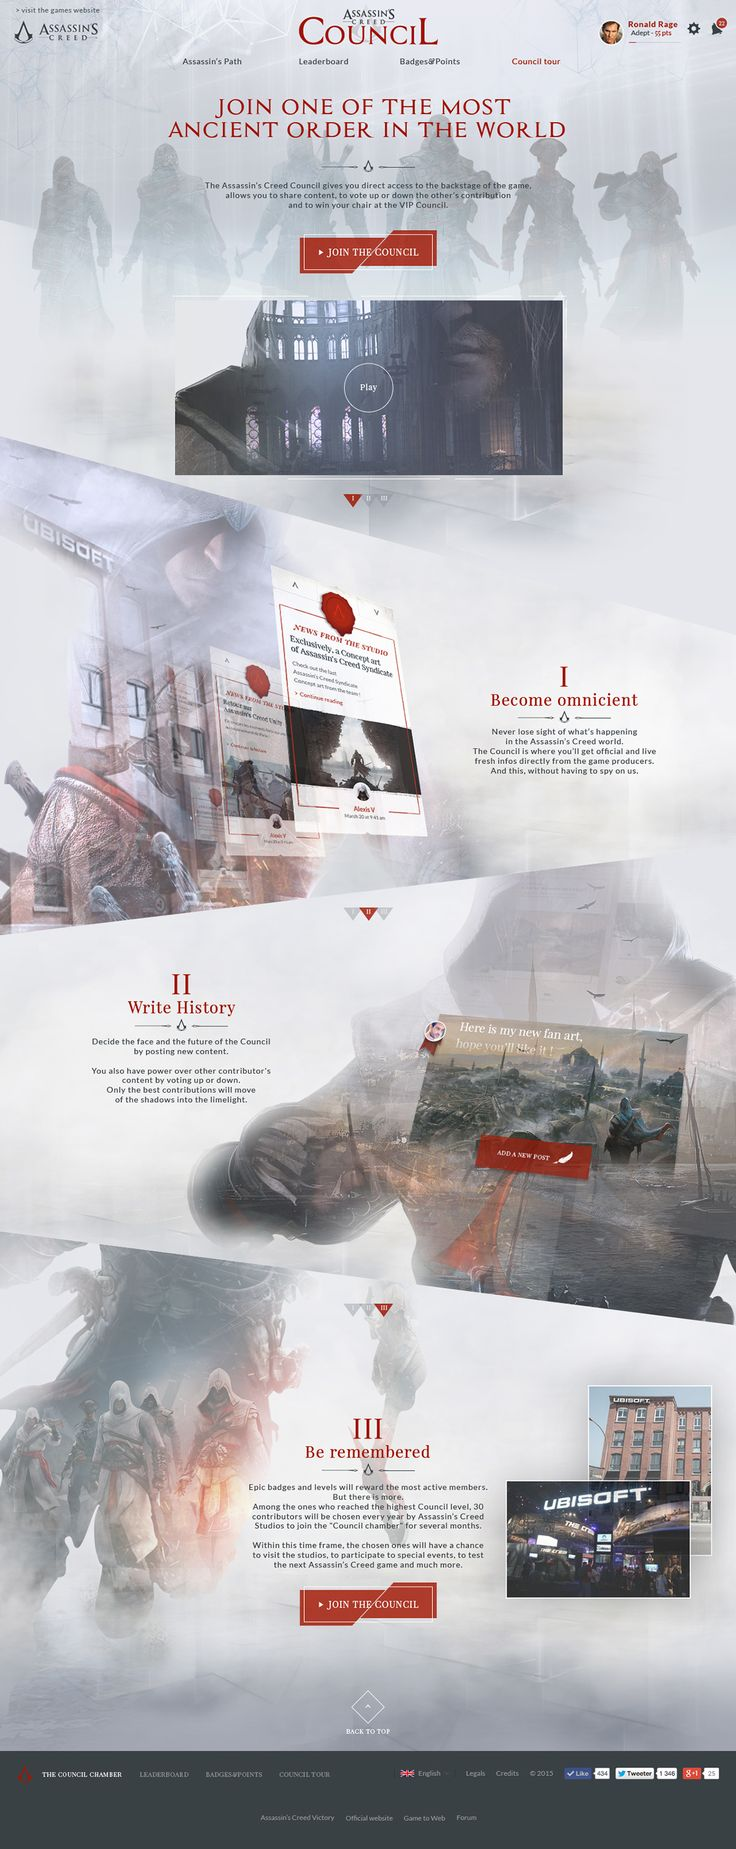 Assassin's Creed Council on Behance #Ui #ux #layout #webdesign #craft #crafted #ubisoft